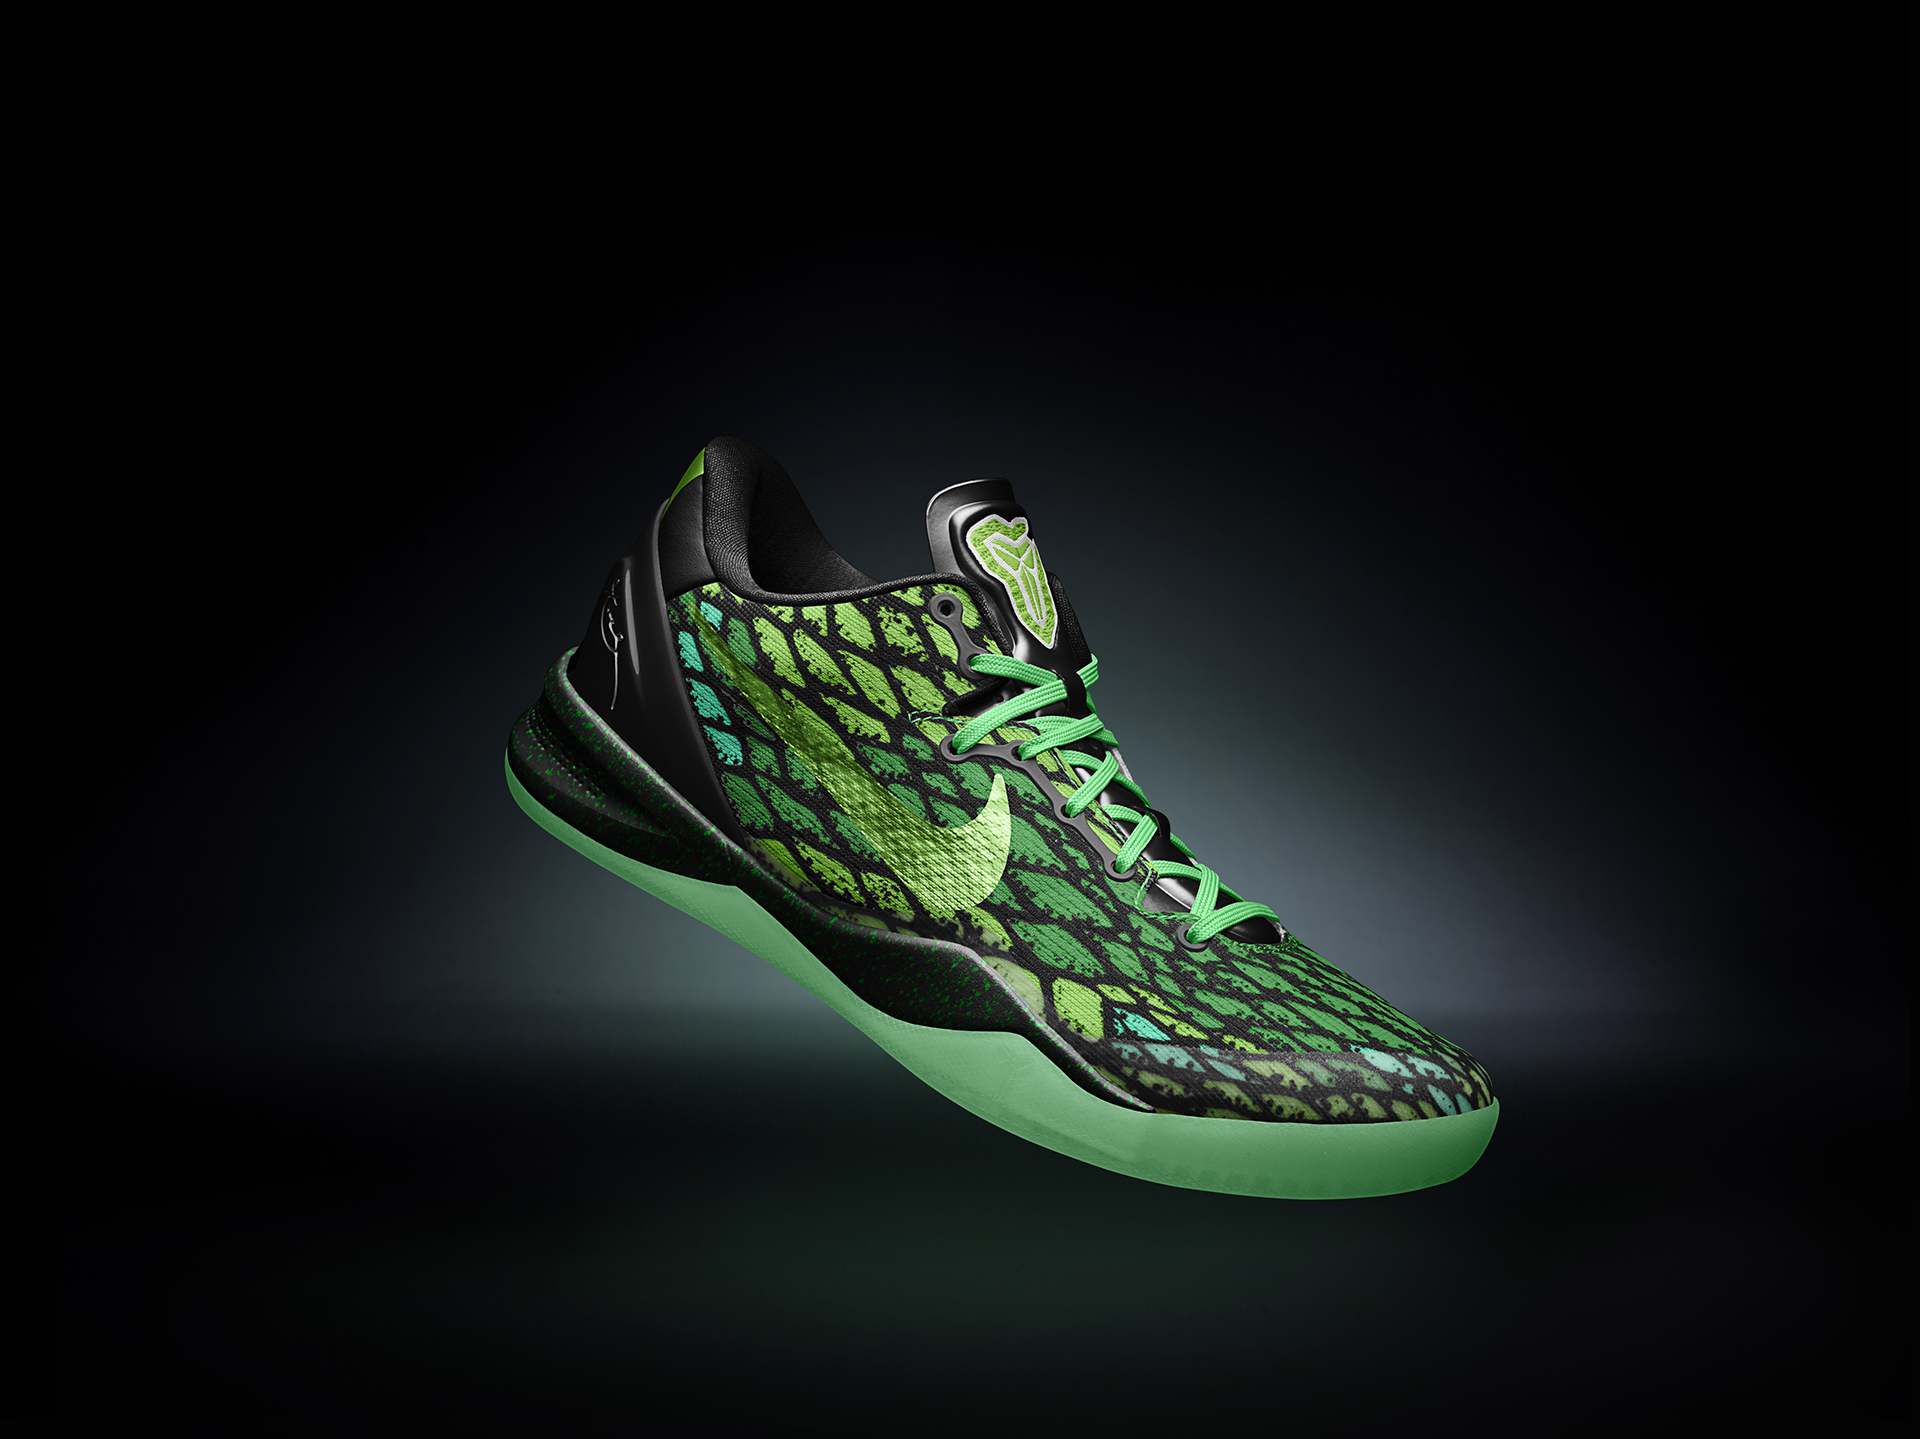 KOBEVIII_MEN_SINGLE_GREEN_1920.jpg